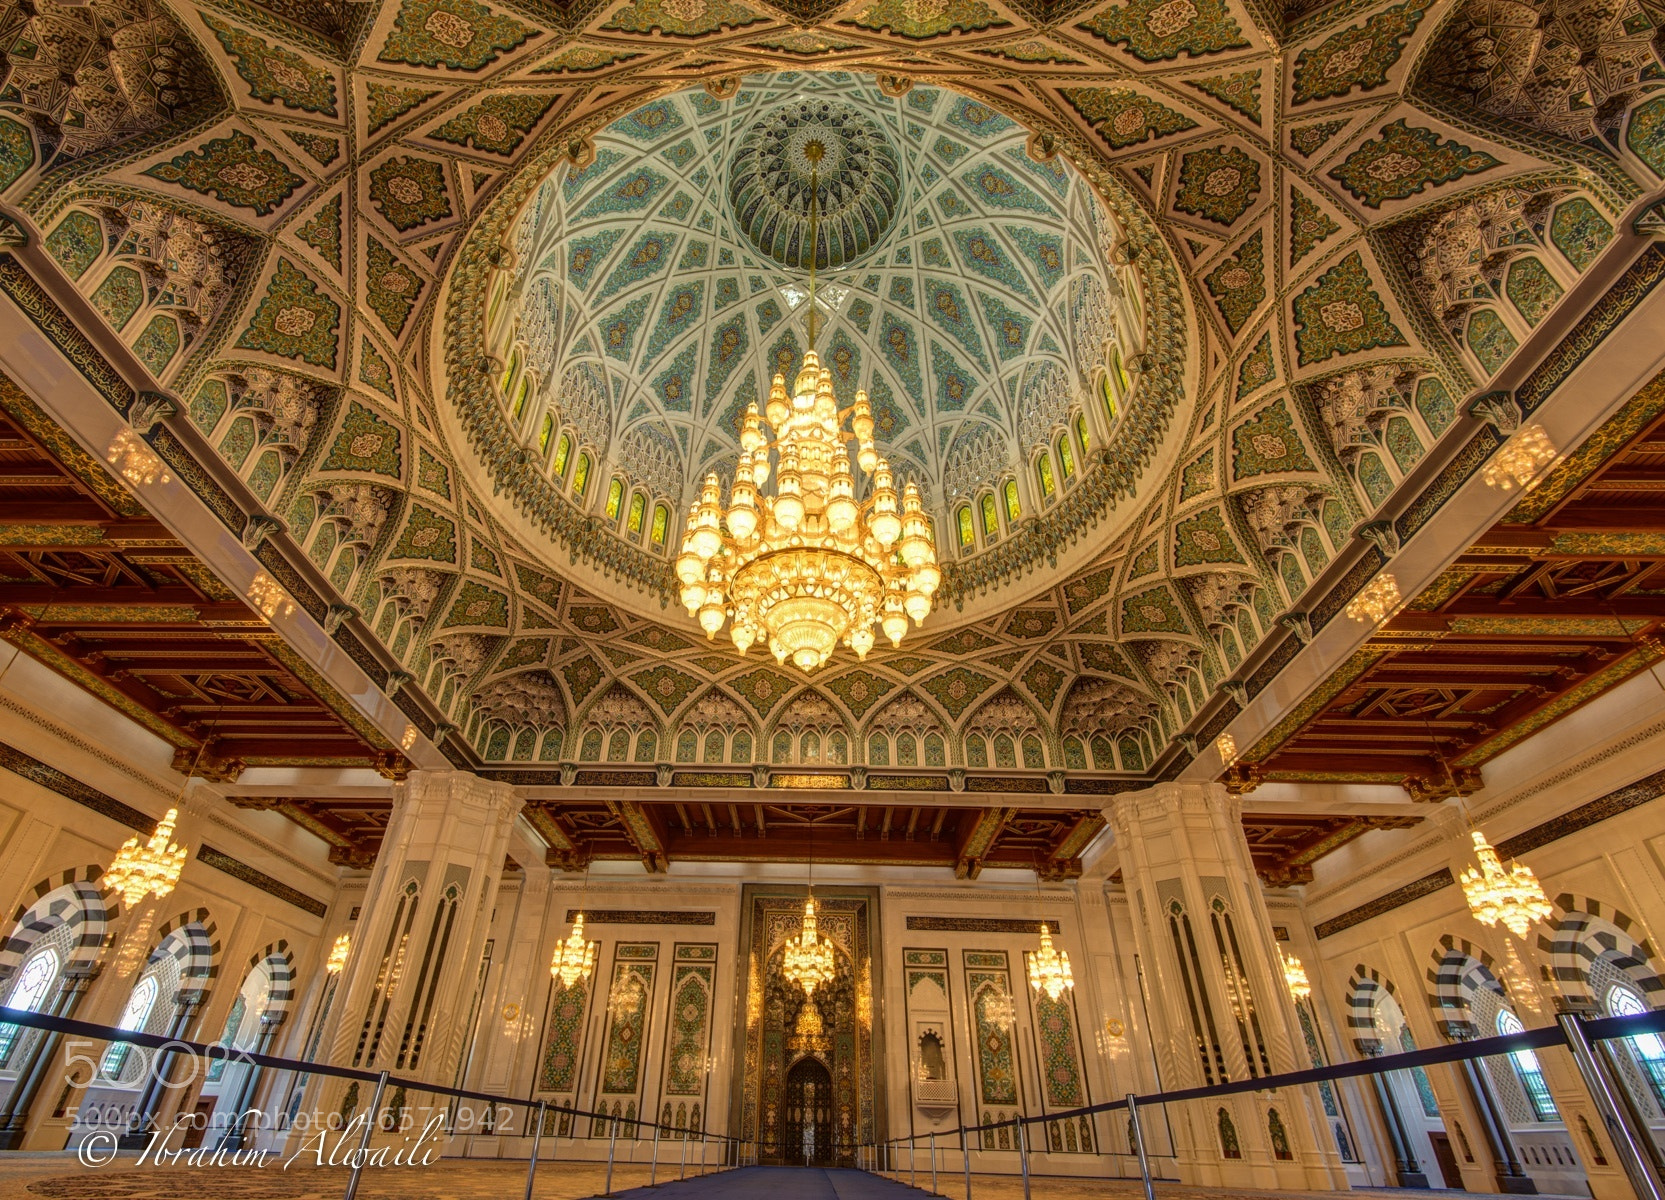 Photograph Pray hall of the Grand mosque - Muscat by Ibrahim AlWaili on 500px